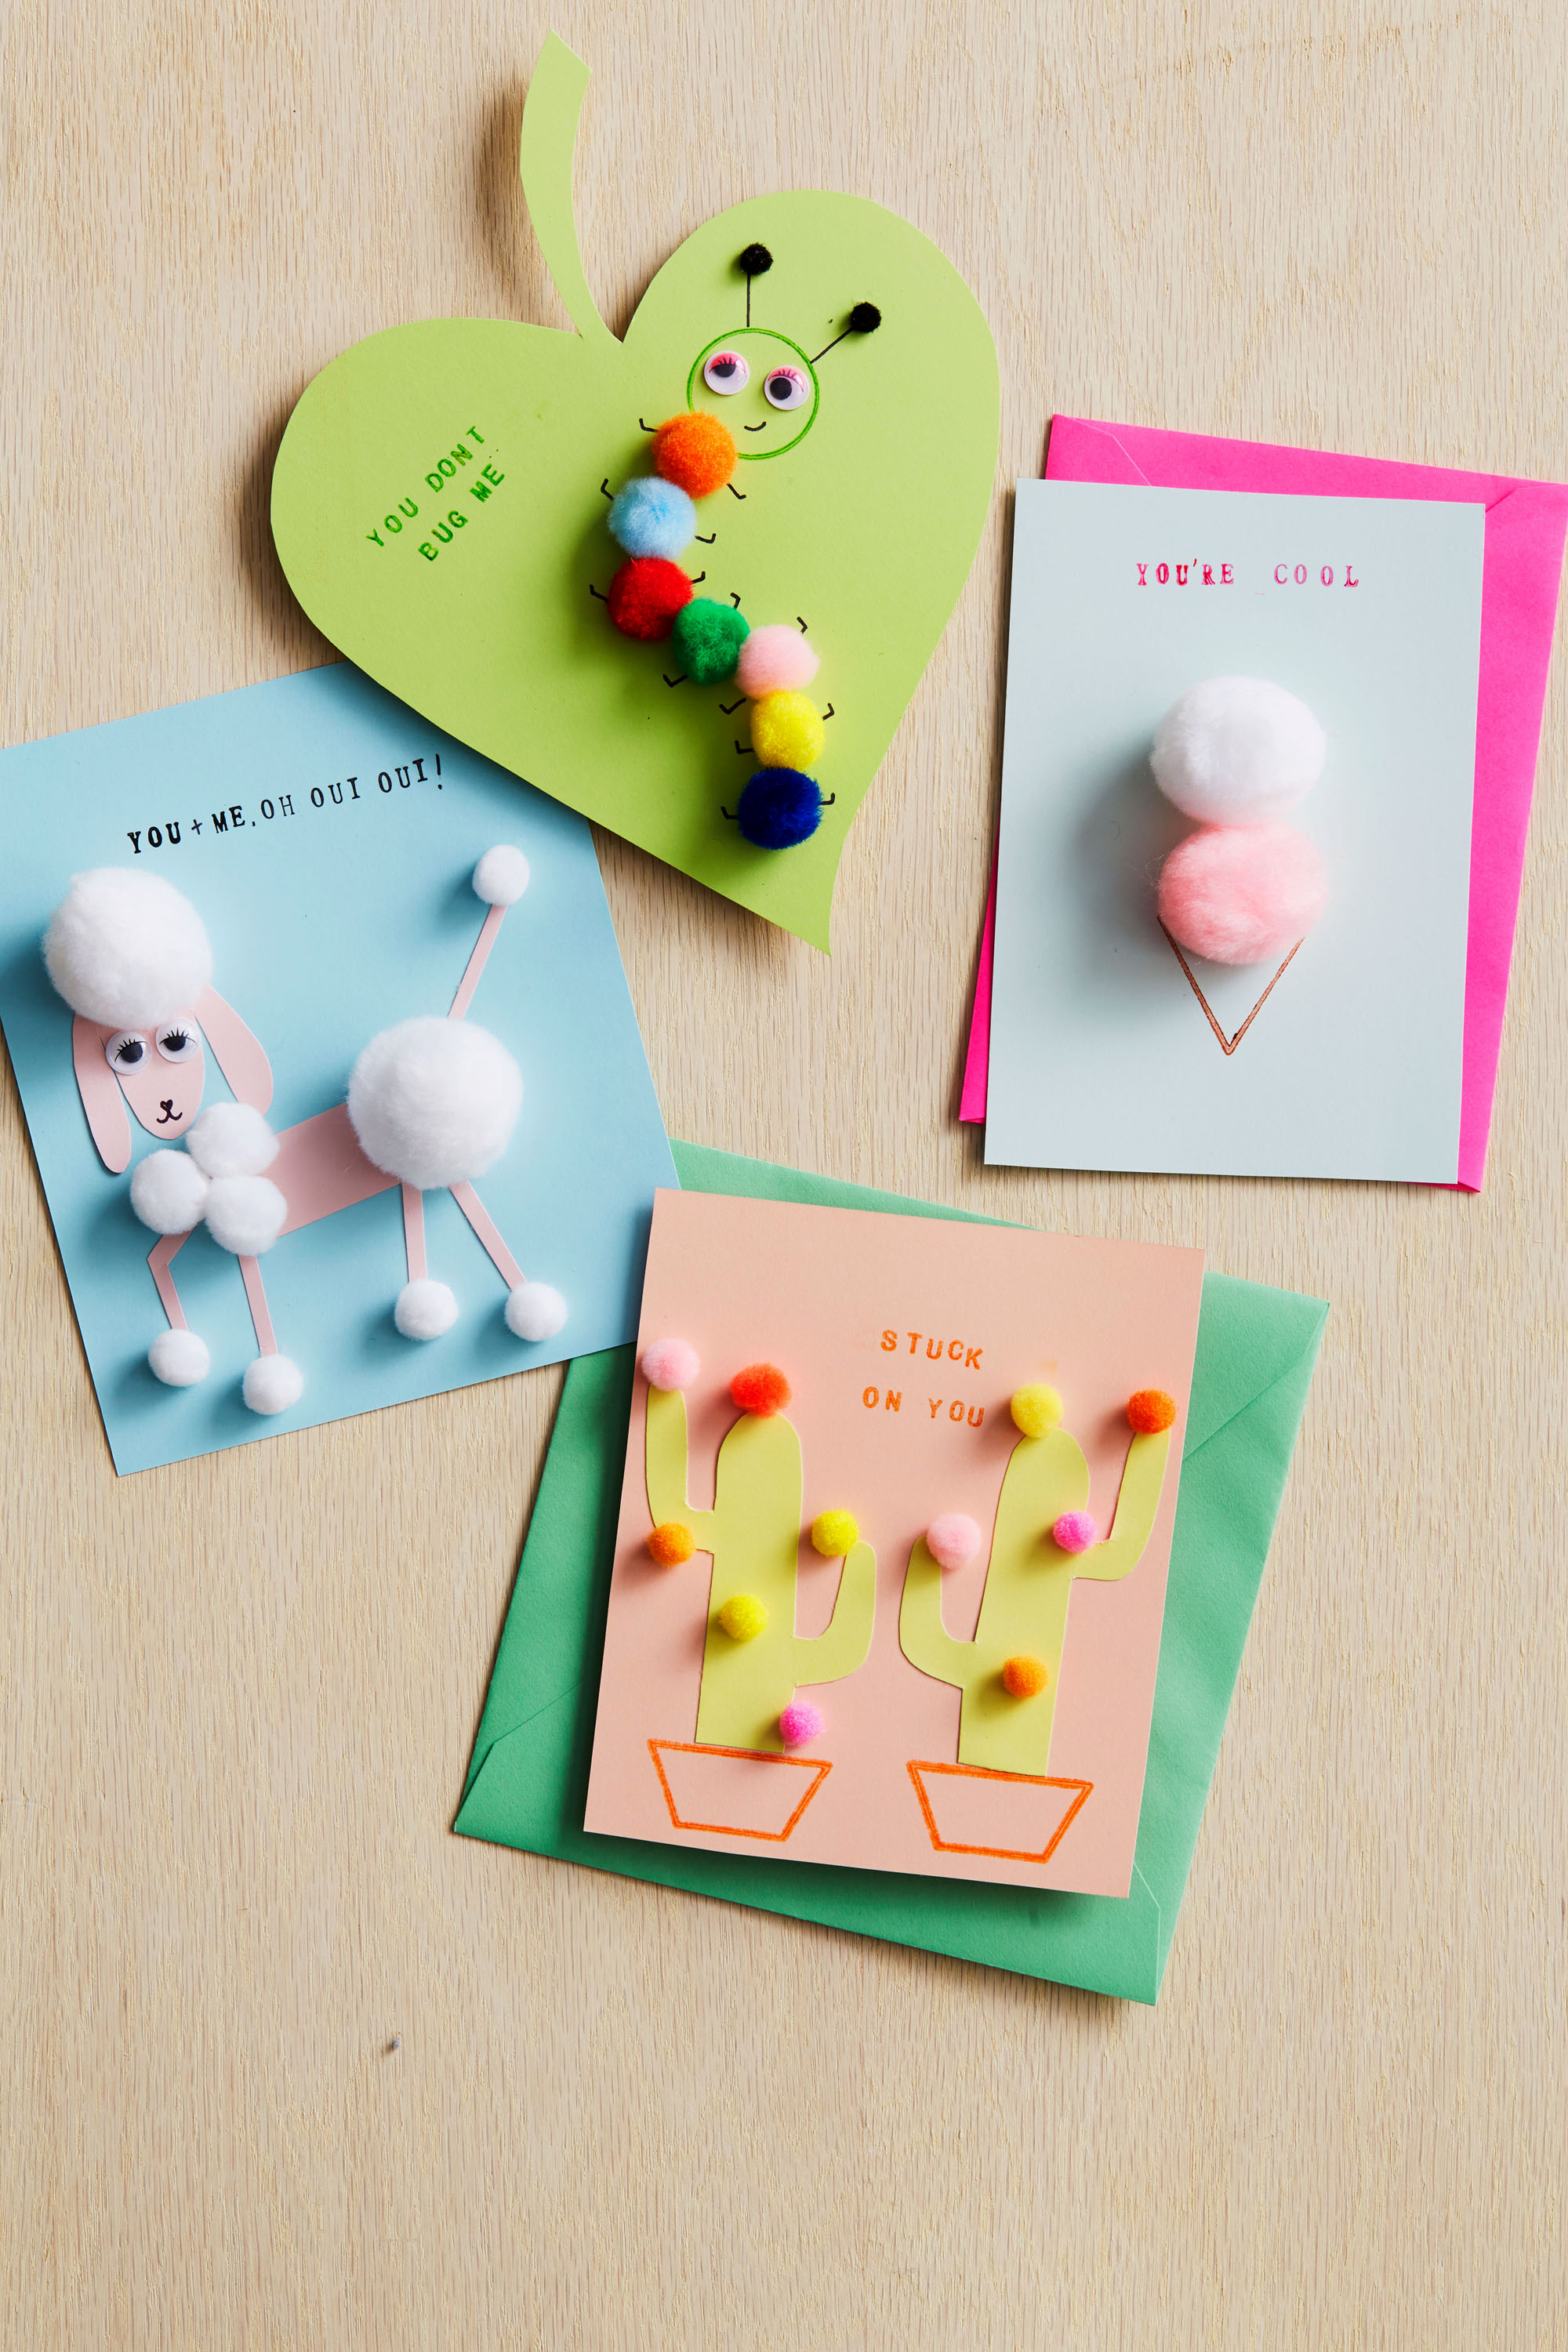 valentine's day crafts that are fun and easy for kids to